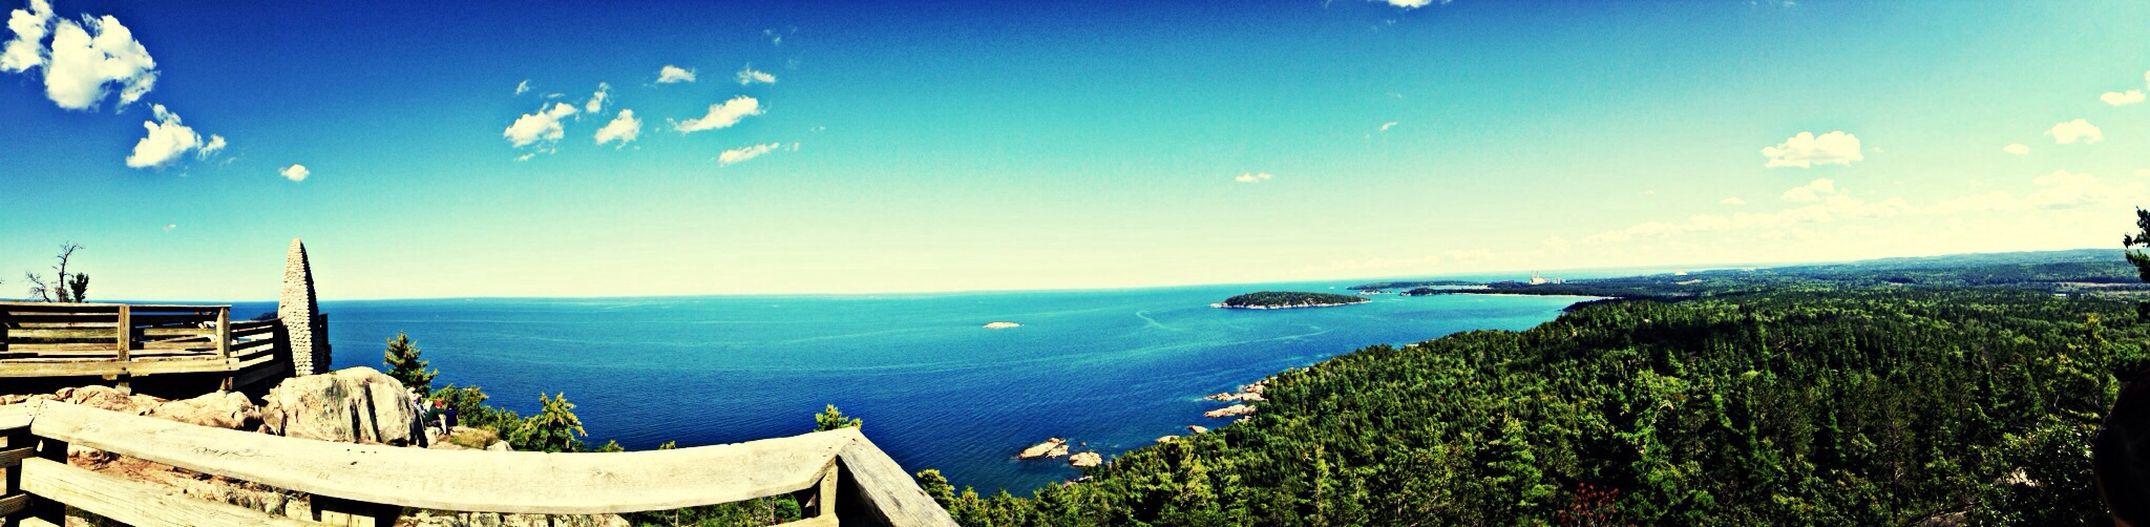 Took this Panorama at Sugarloaf yesterday. Marquette